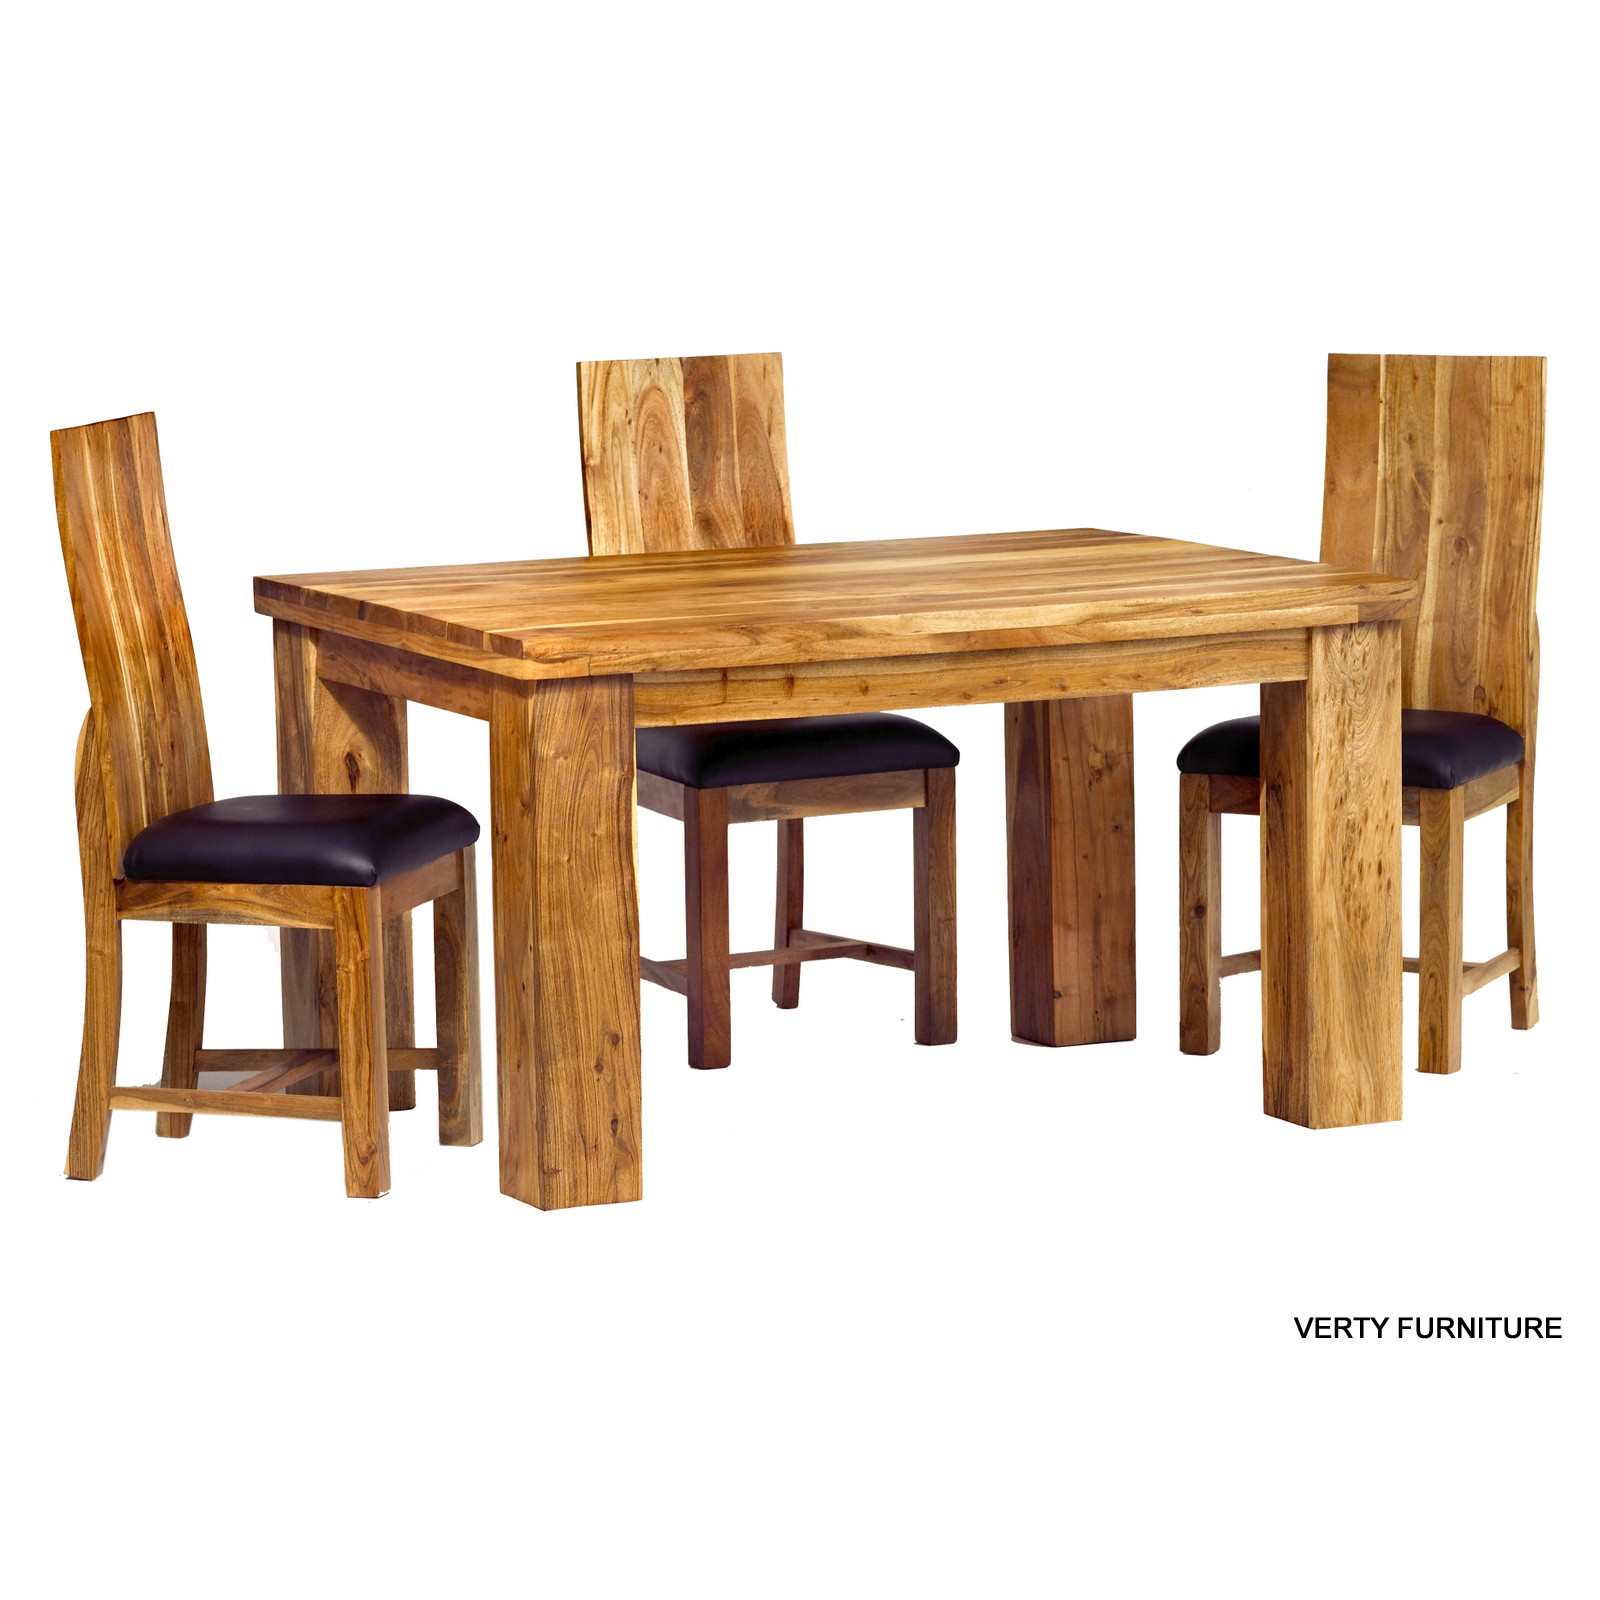 compact dining table and chairs adirondack chair original design acacia small with 4 verty indian